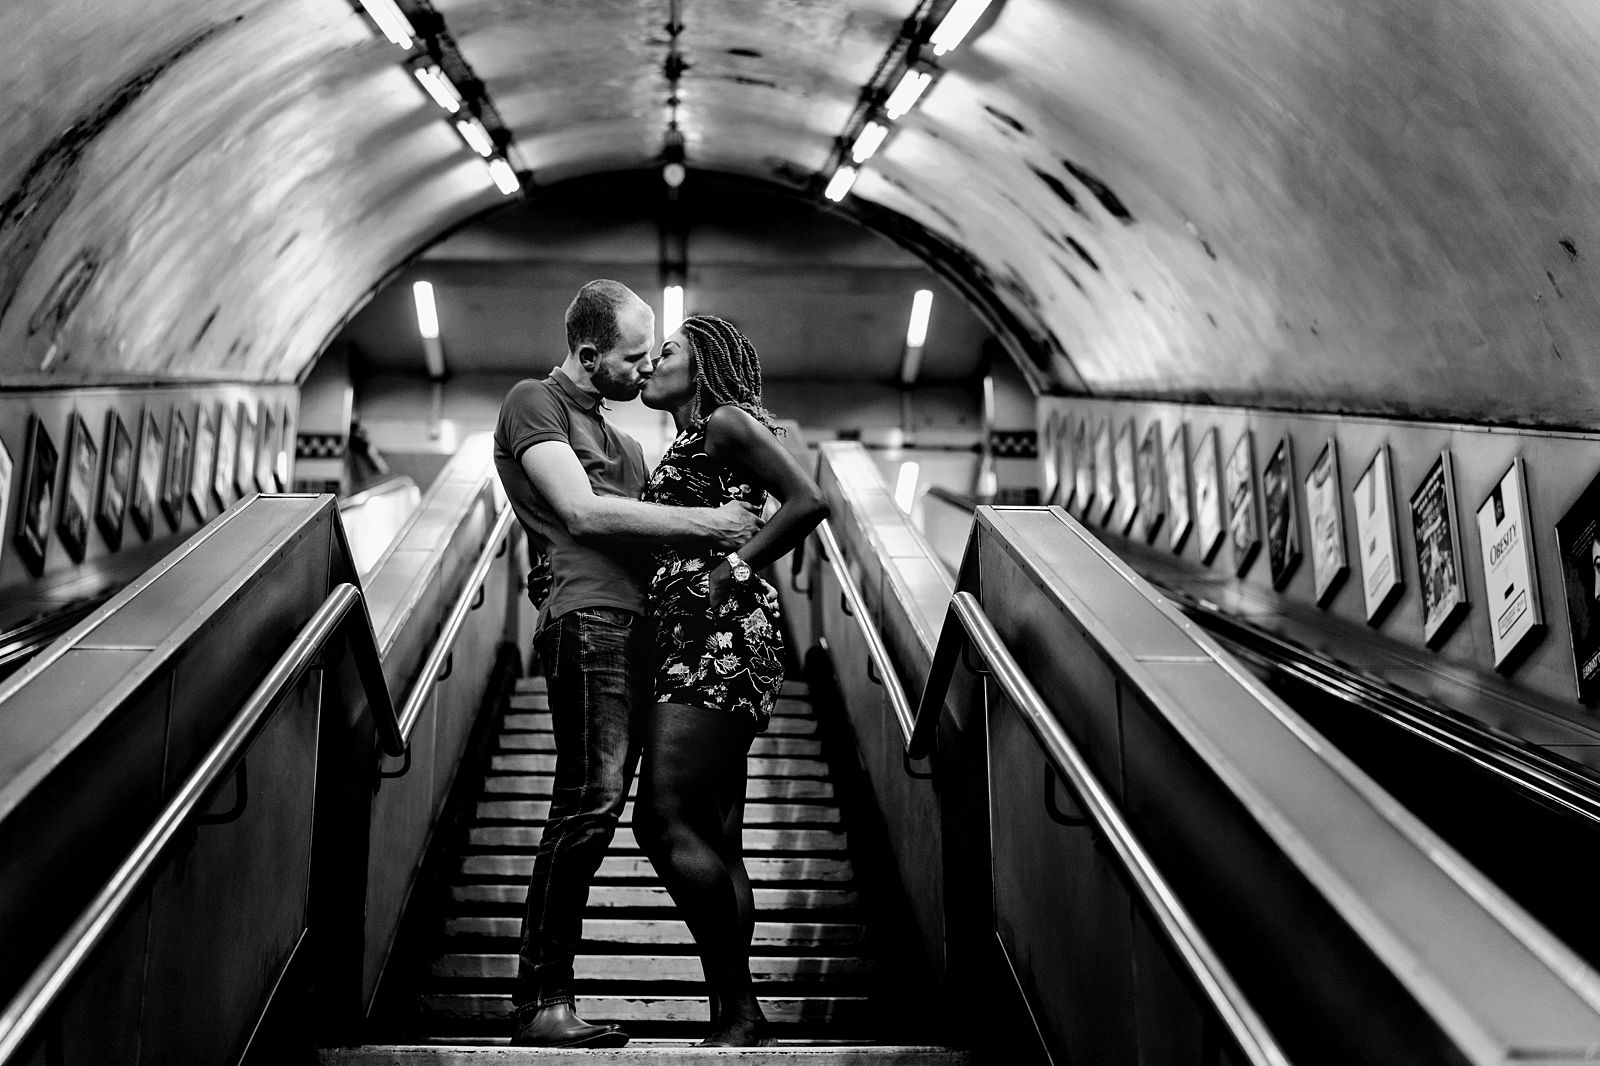 verlovingsshoot londen, fotoshoot londen, loveshoot londen, engagement londen, engagement session london, elopement photographer london, trouwen in het buitenland, trouwen in engeland, trouwen in de uk, trouwen in londen, destination wedding fotograaf, verlovingsshoot londen, elopement londen, RUUDC fotograaf, trouwfotograaf Limburg, bruidsfotograaf Limburg, Fotograaf bruiloft, fotograaf huwelijk